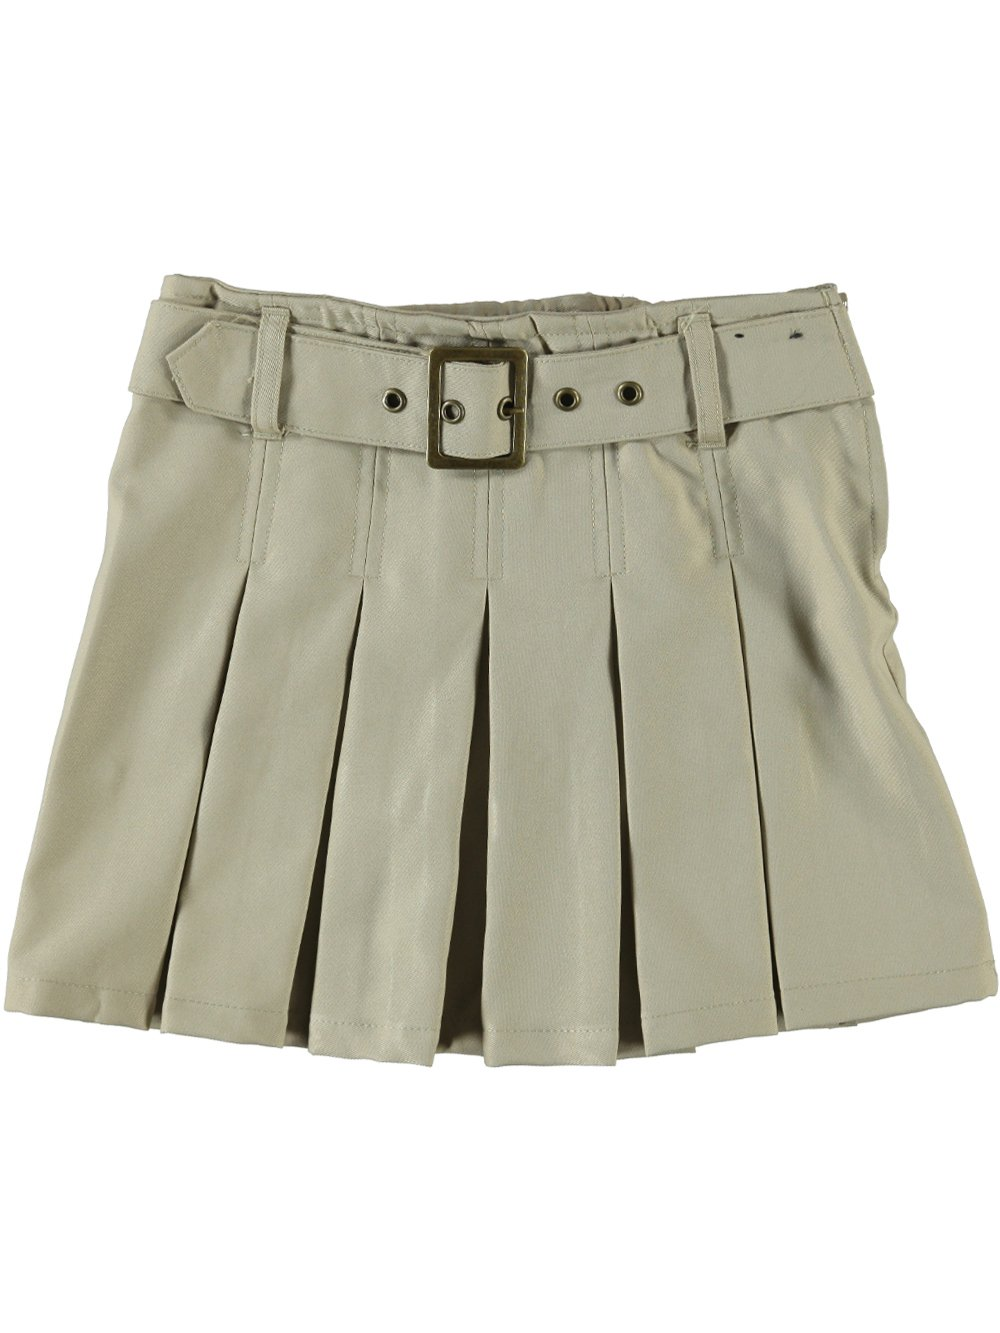 French Toast Big Girls' Scooter with Grommeted Belt - khaki, 7